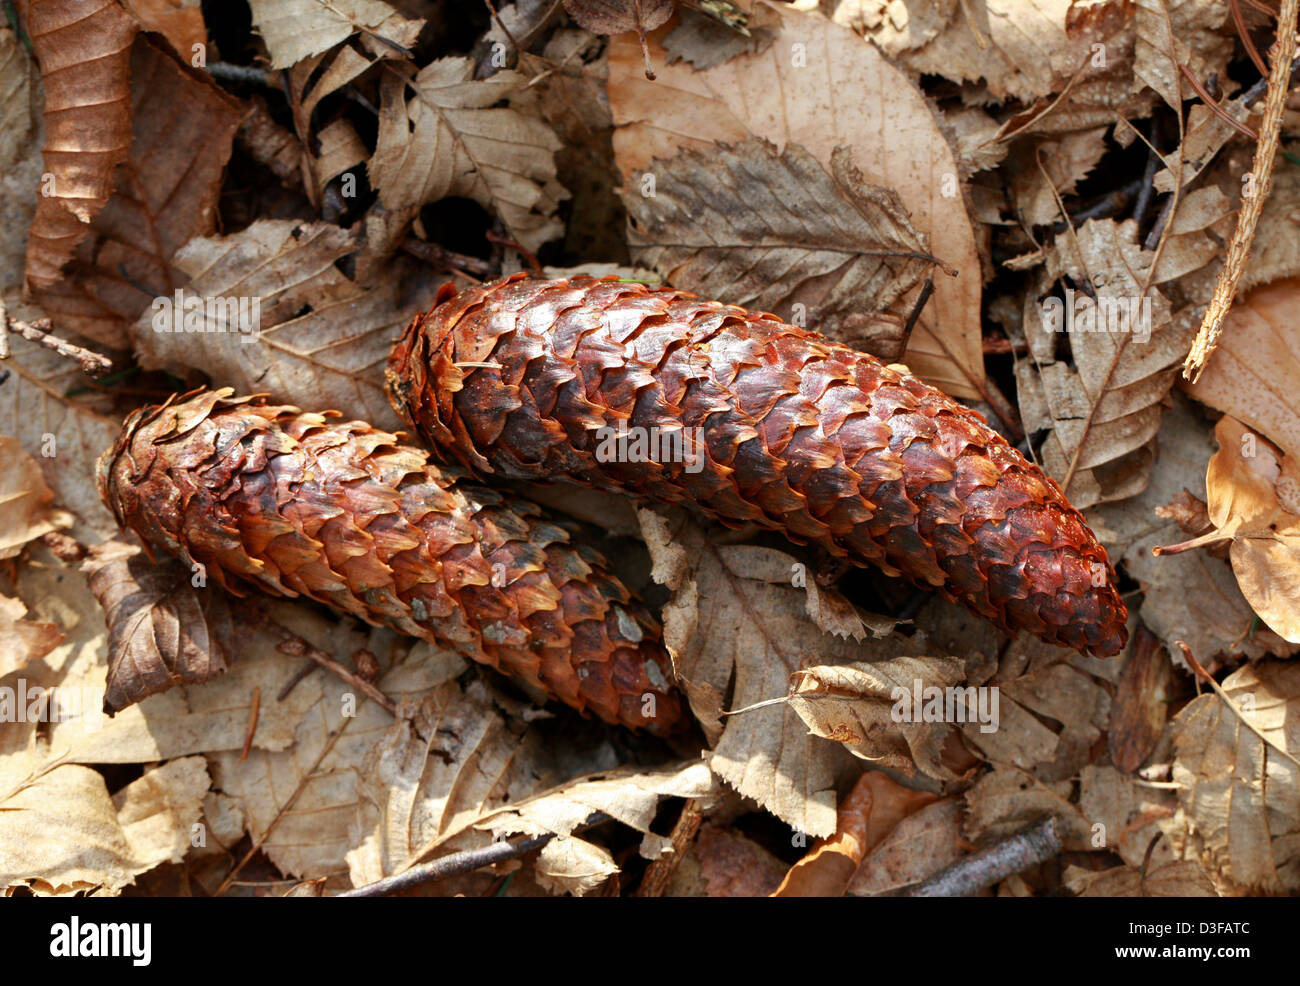 Norway Spruce Cones, Picea abies, Pinaceae. - Stock Image